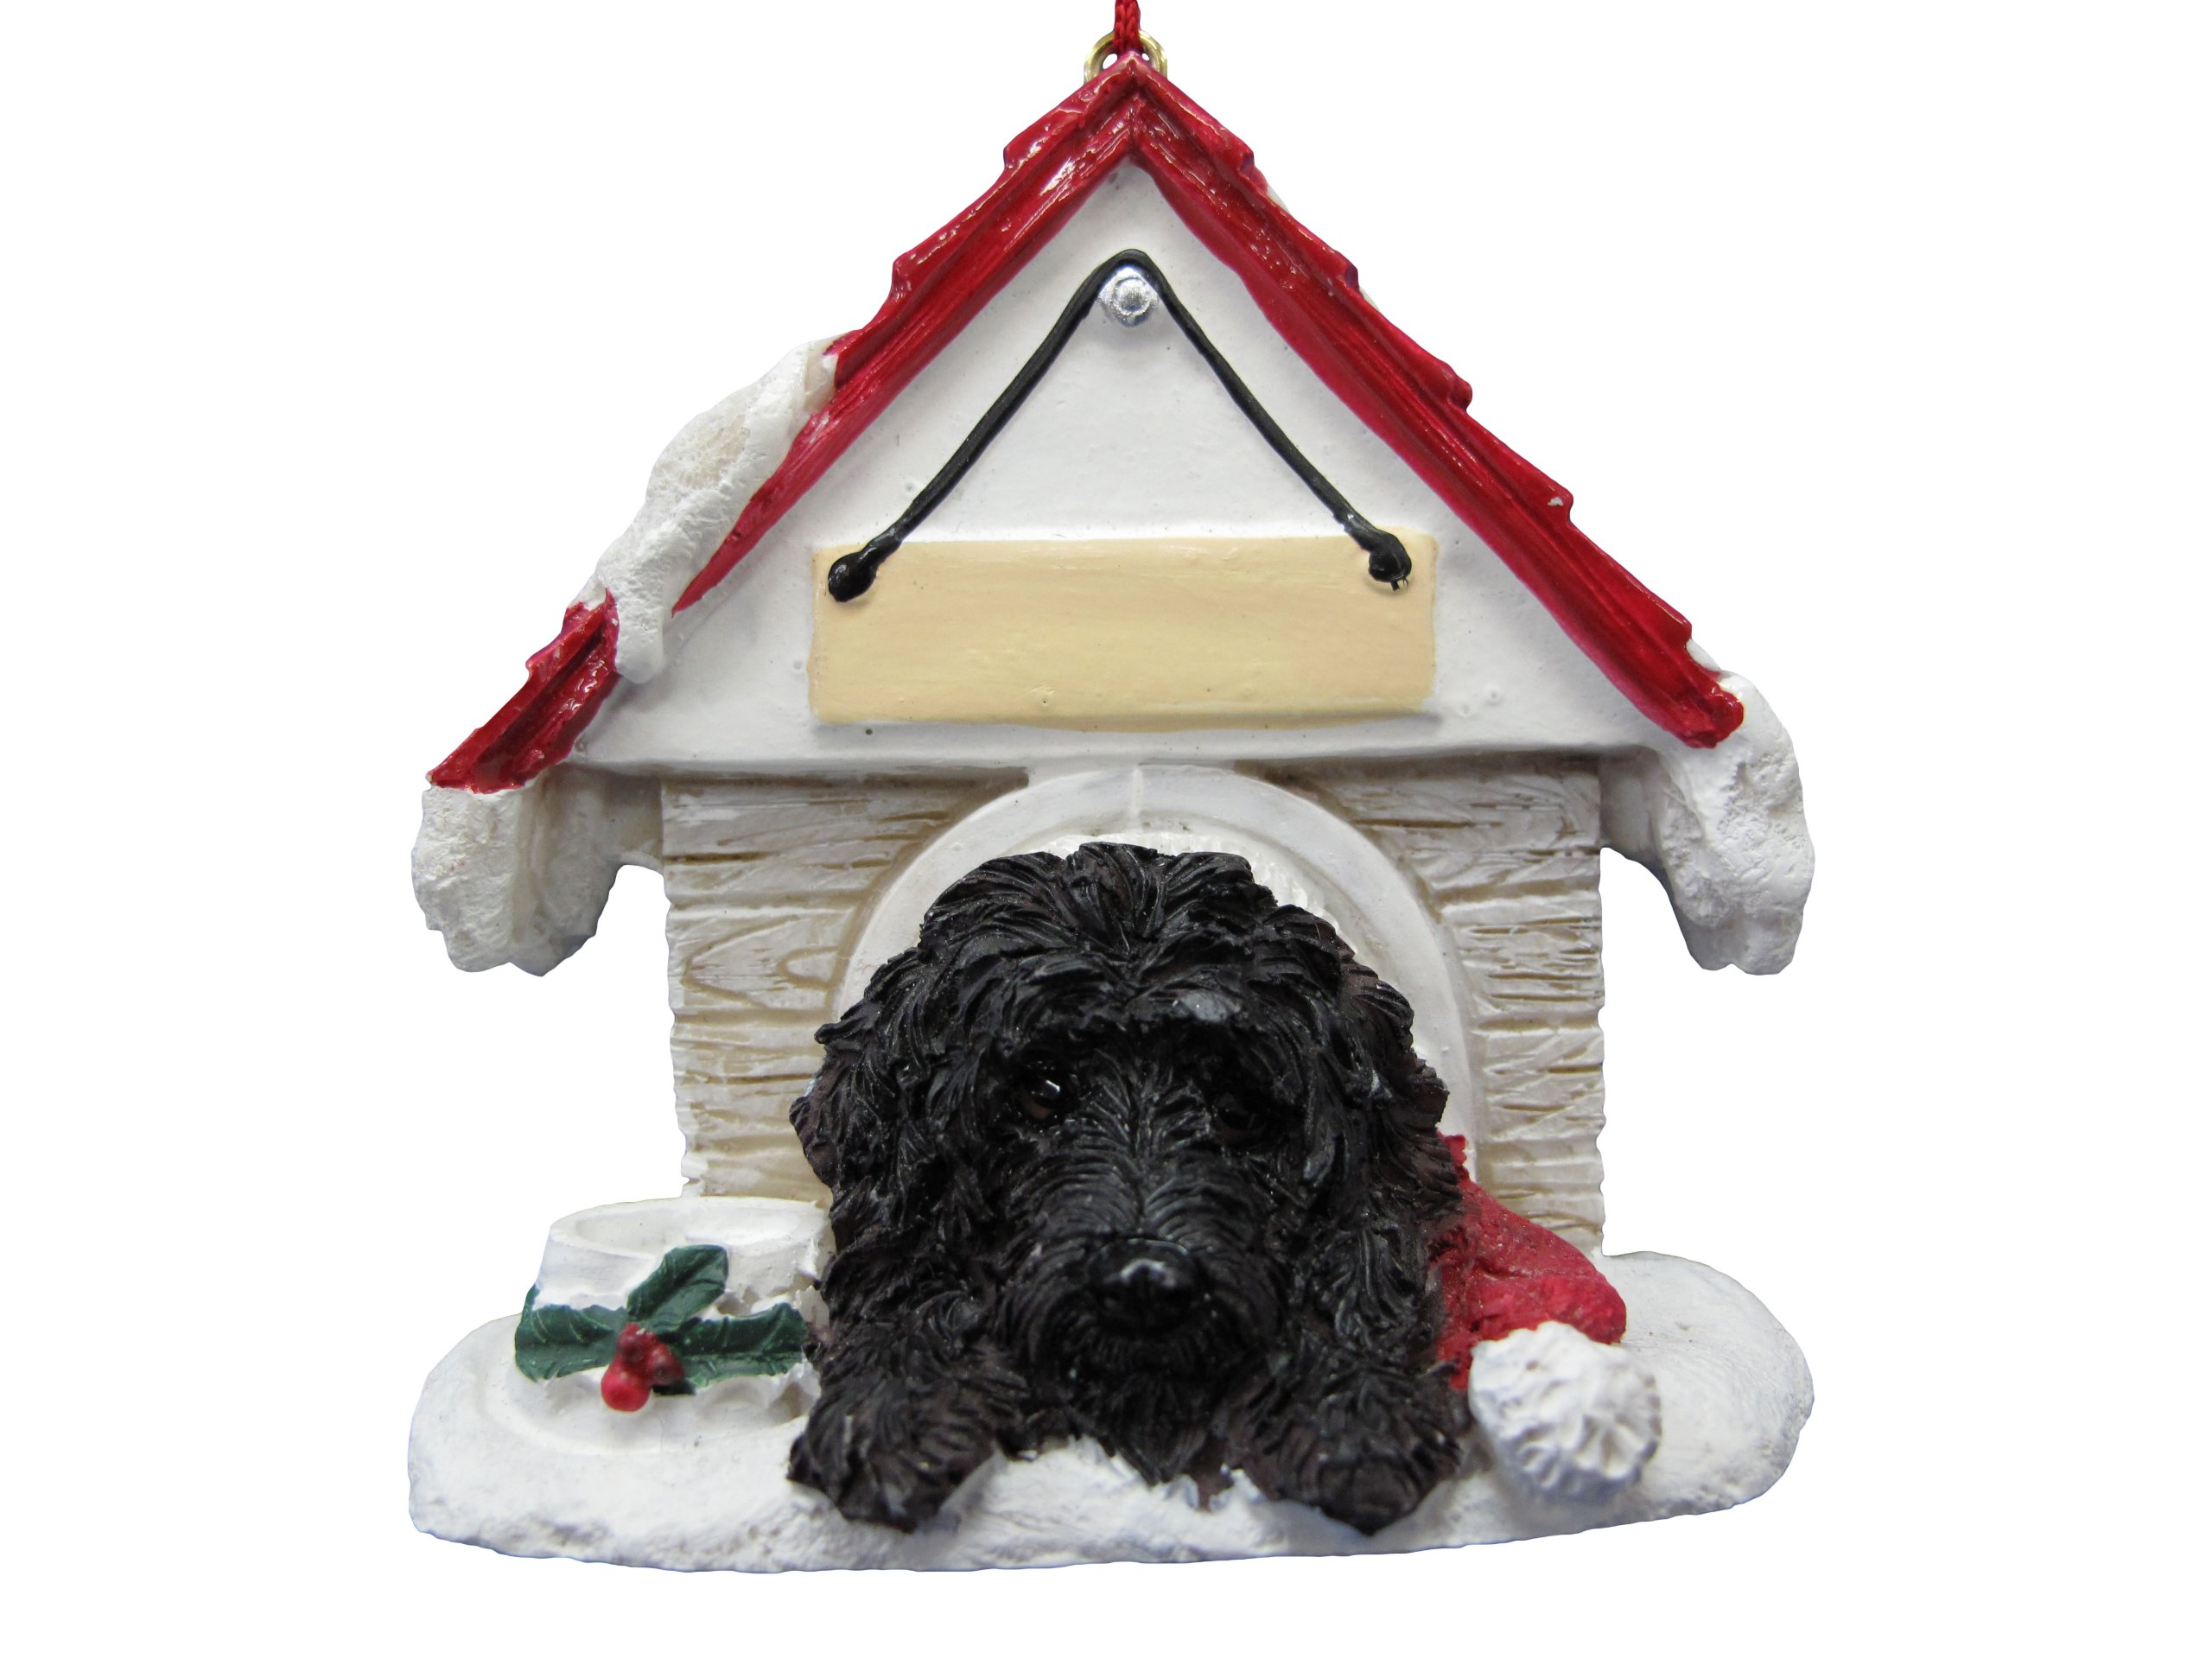 Black-Labradoodle-Ornament-A-Great-Gift-For-Black-Labradoodle-Owners-Hand-Painted-and-Easily-Personalized-Doghouse-Ornament-With-Magnetic-Back